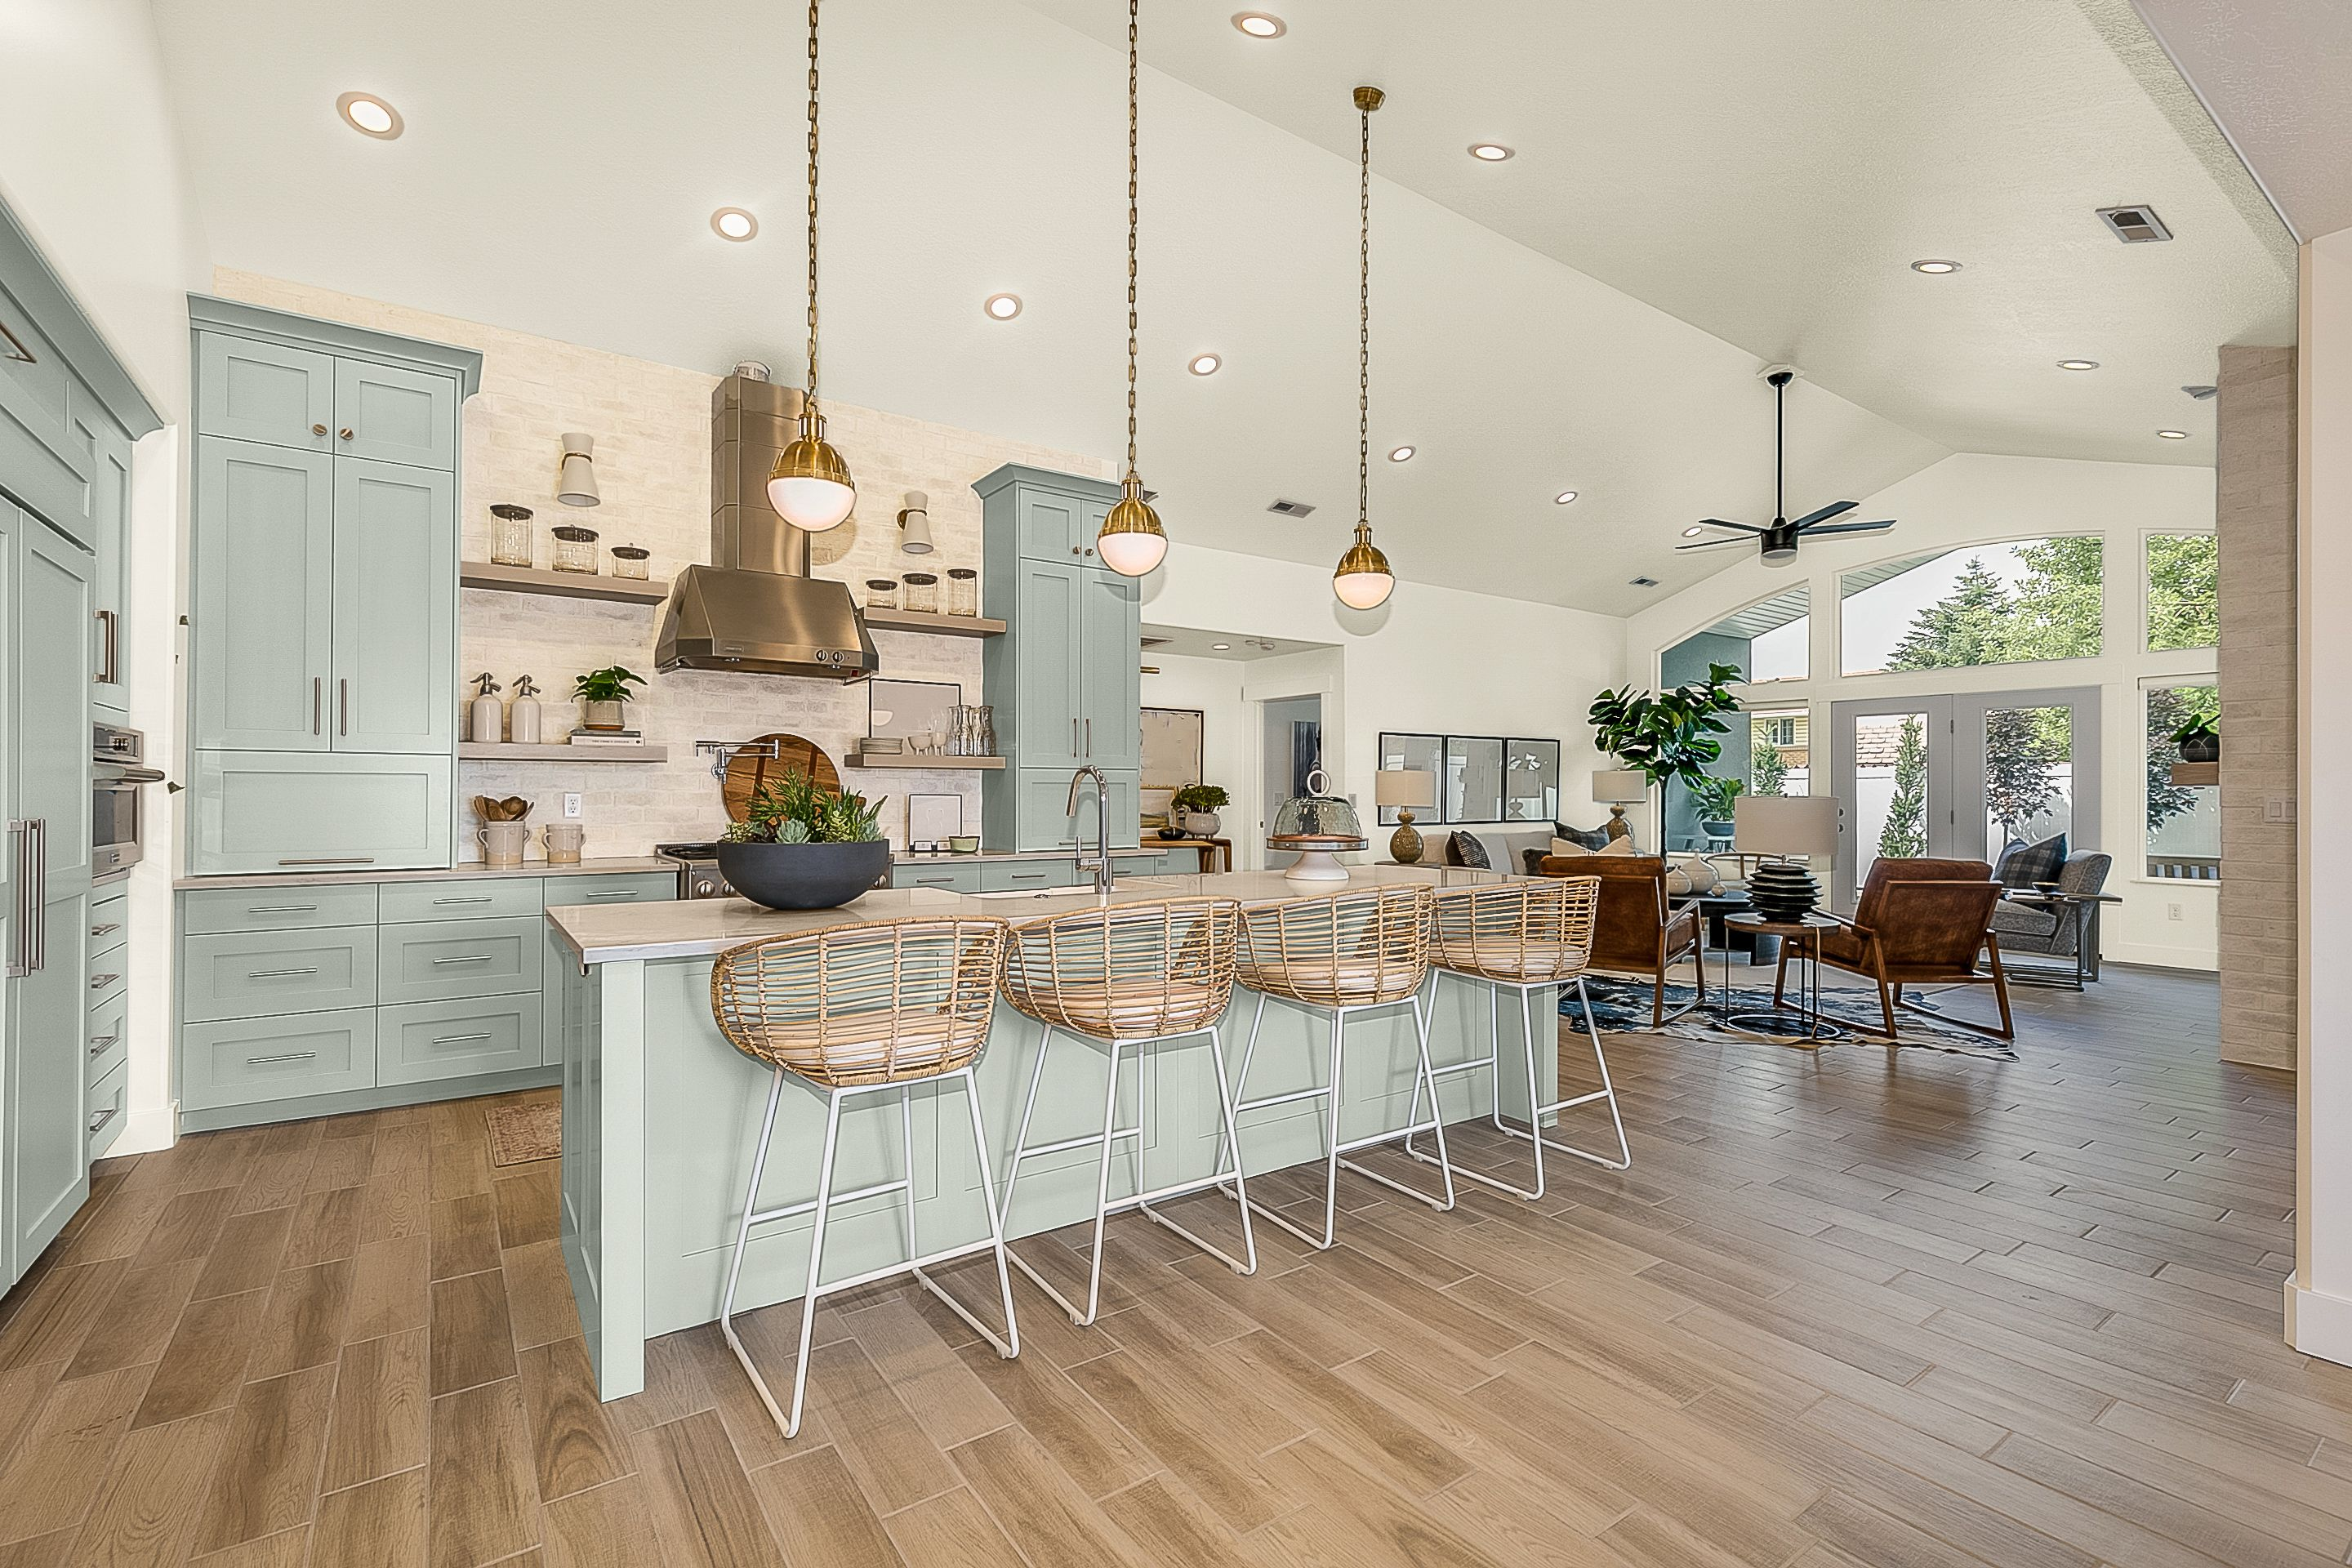 Joanna Gaines Shares Her Favorite Cozy Kitchen Color Combinations